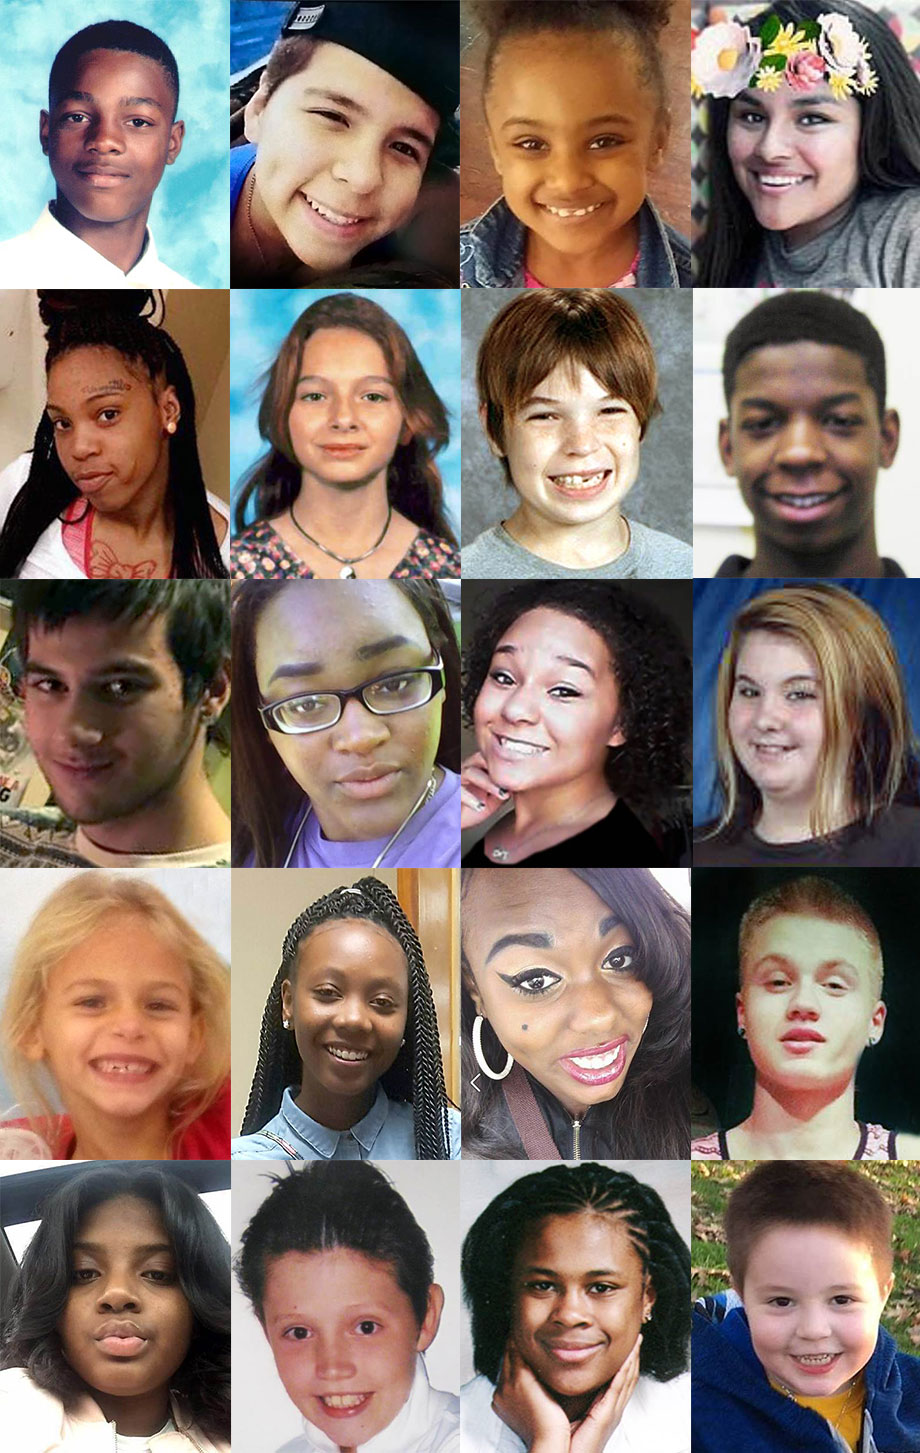 Missing children in the United States.